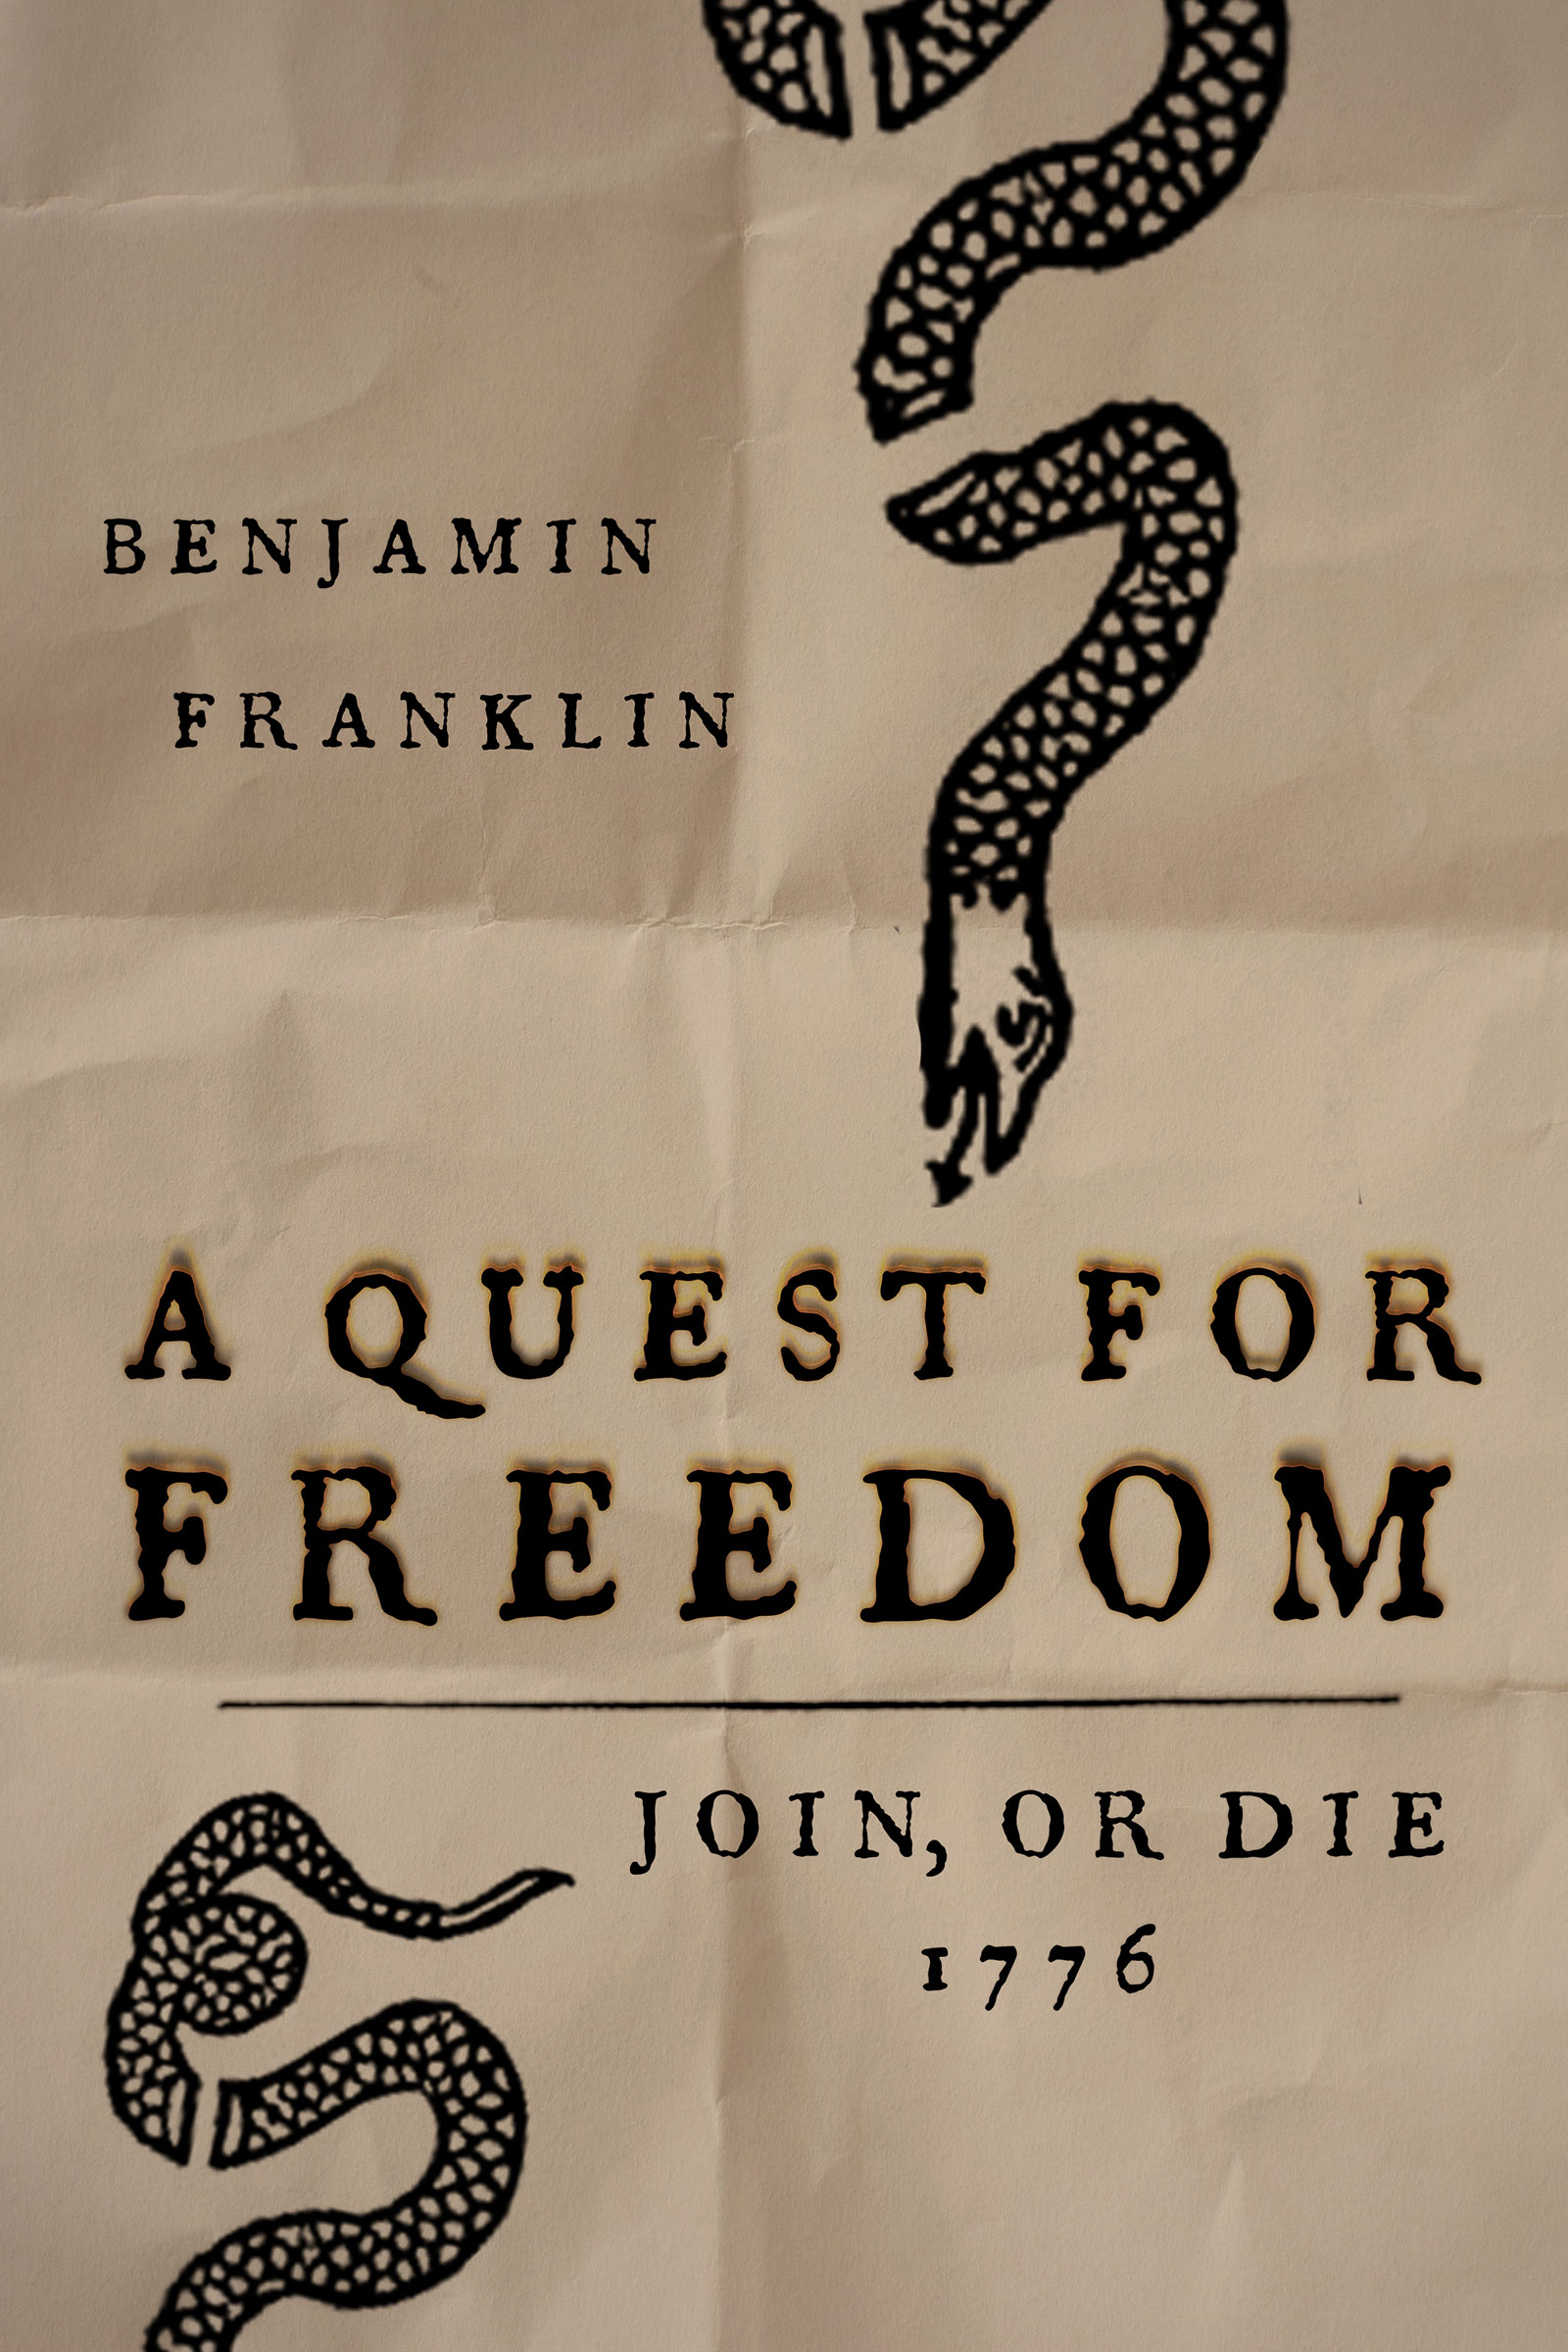 Poster design for Olde City Escape Game's first escape room adventure, Benjamin Franklin A Quest for Freedom. Benjamin Franklin's political Join or Die cartoon and historical type are designed on parchment to mimic the printing press effect Benjamin Franklin would have printed in. Players must operate Benjamin Franklin's press to help the colonies win the war against the British!